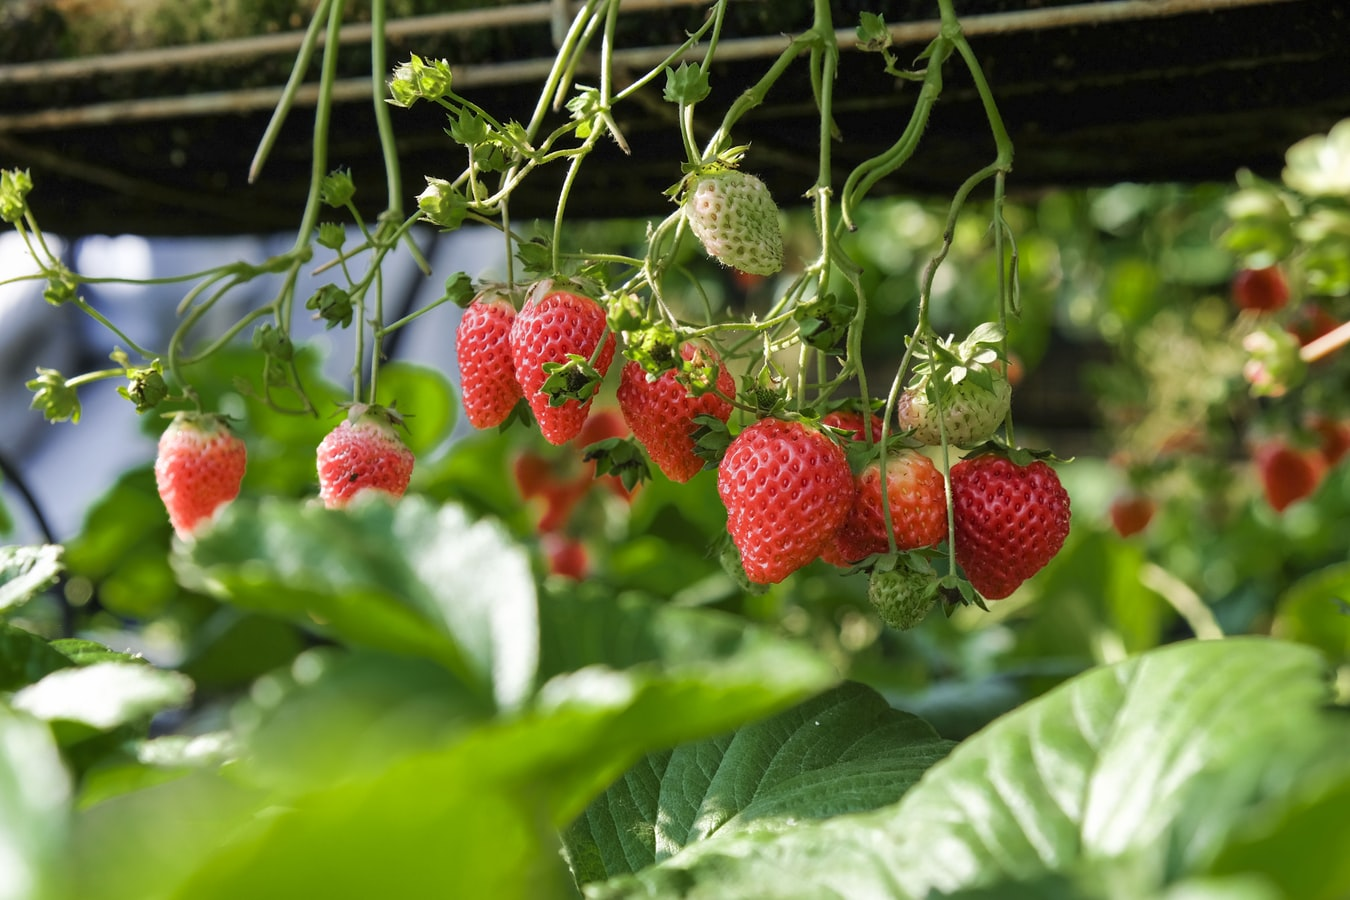 Strawberry Anti-Aging Top Food! Protect You From Aging